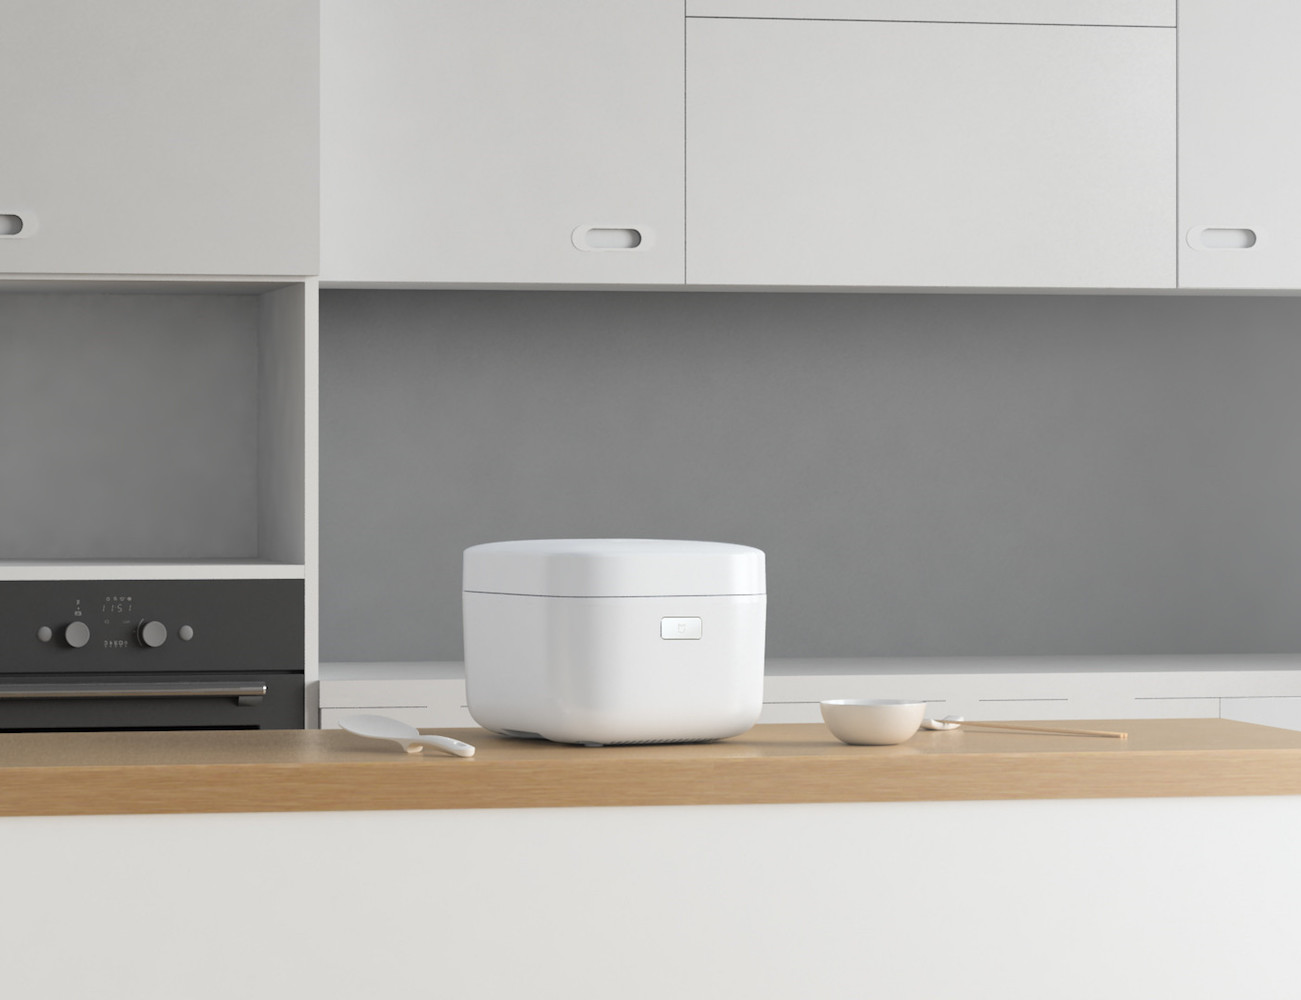 mi-rice-cooker-by-xiaomi-02